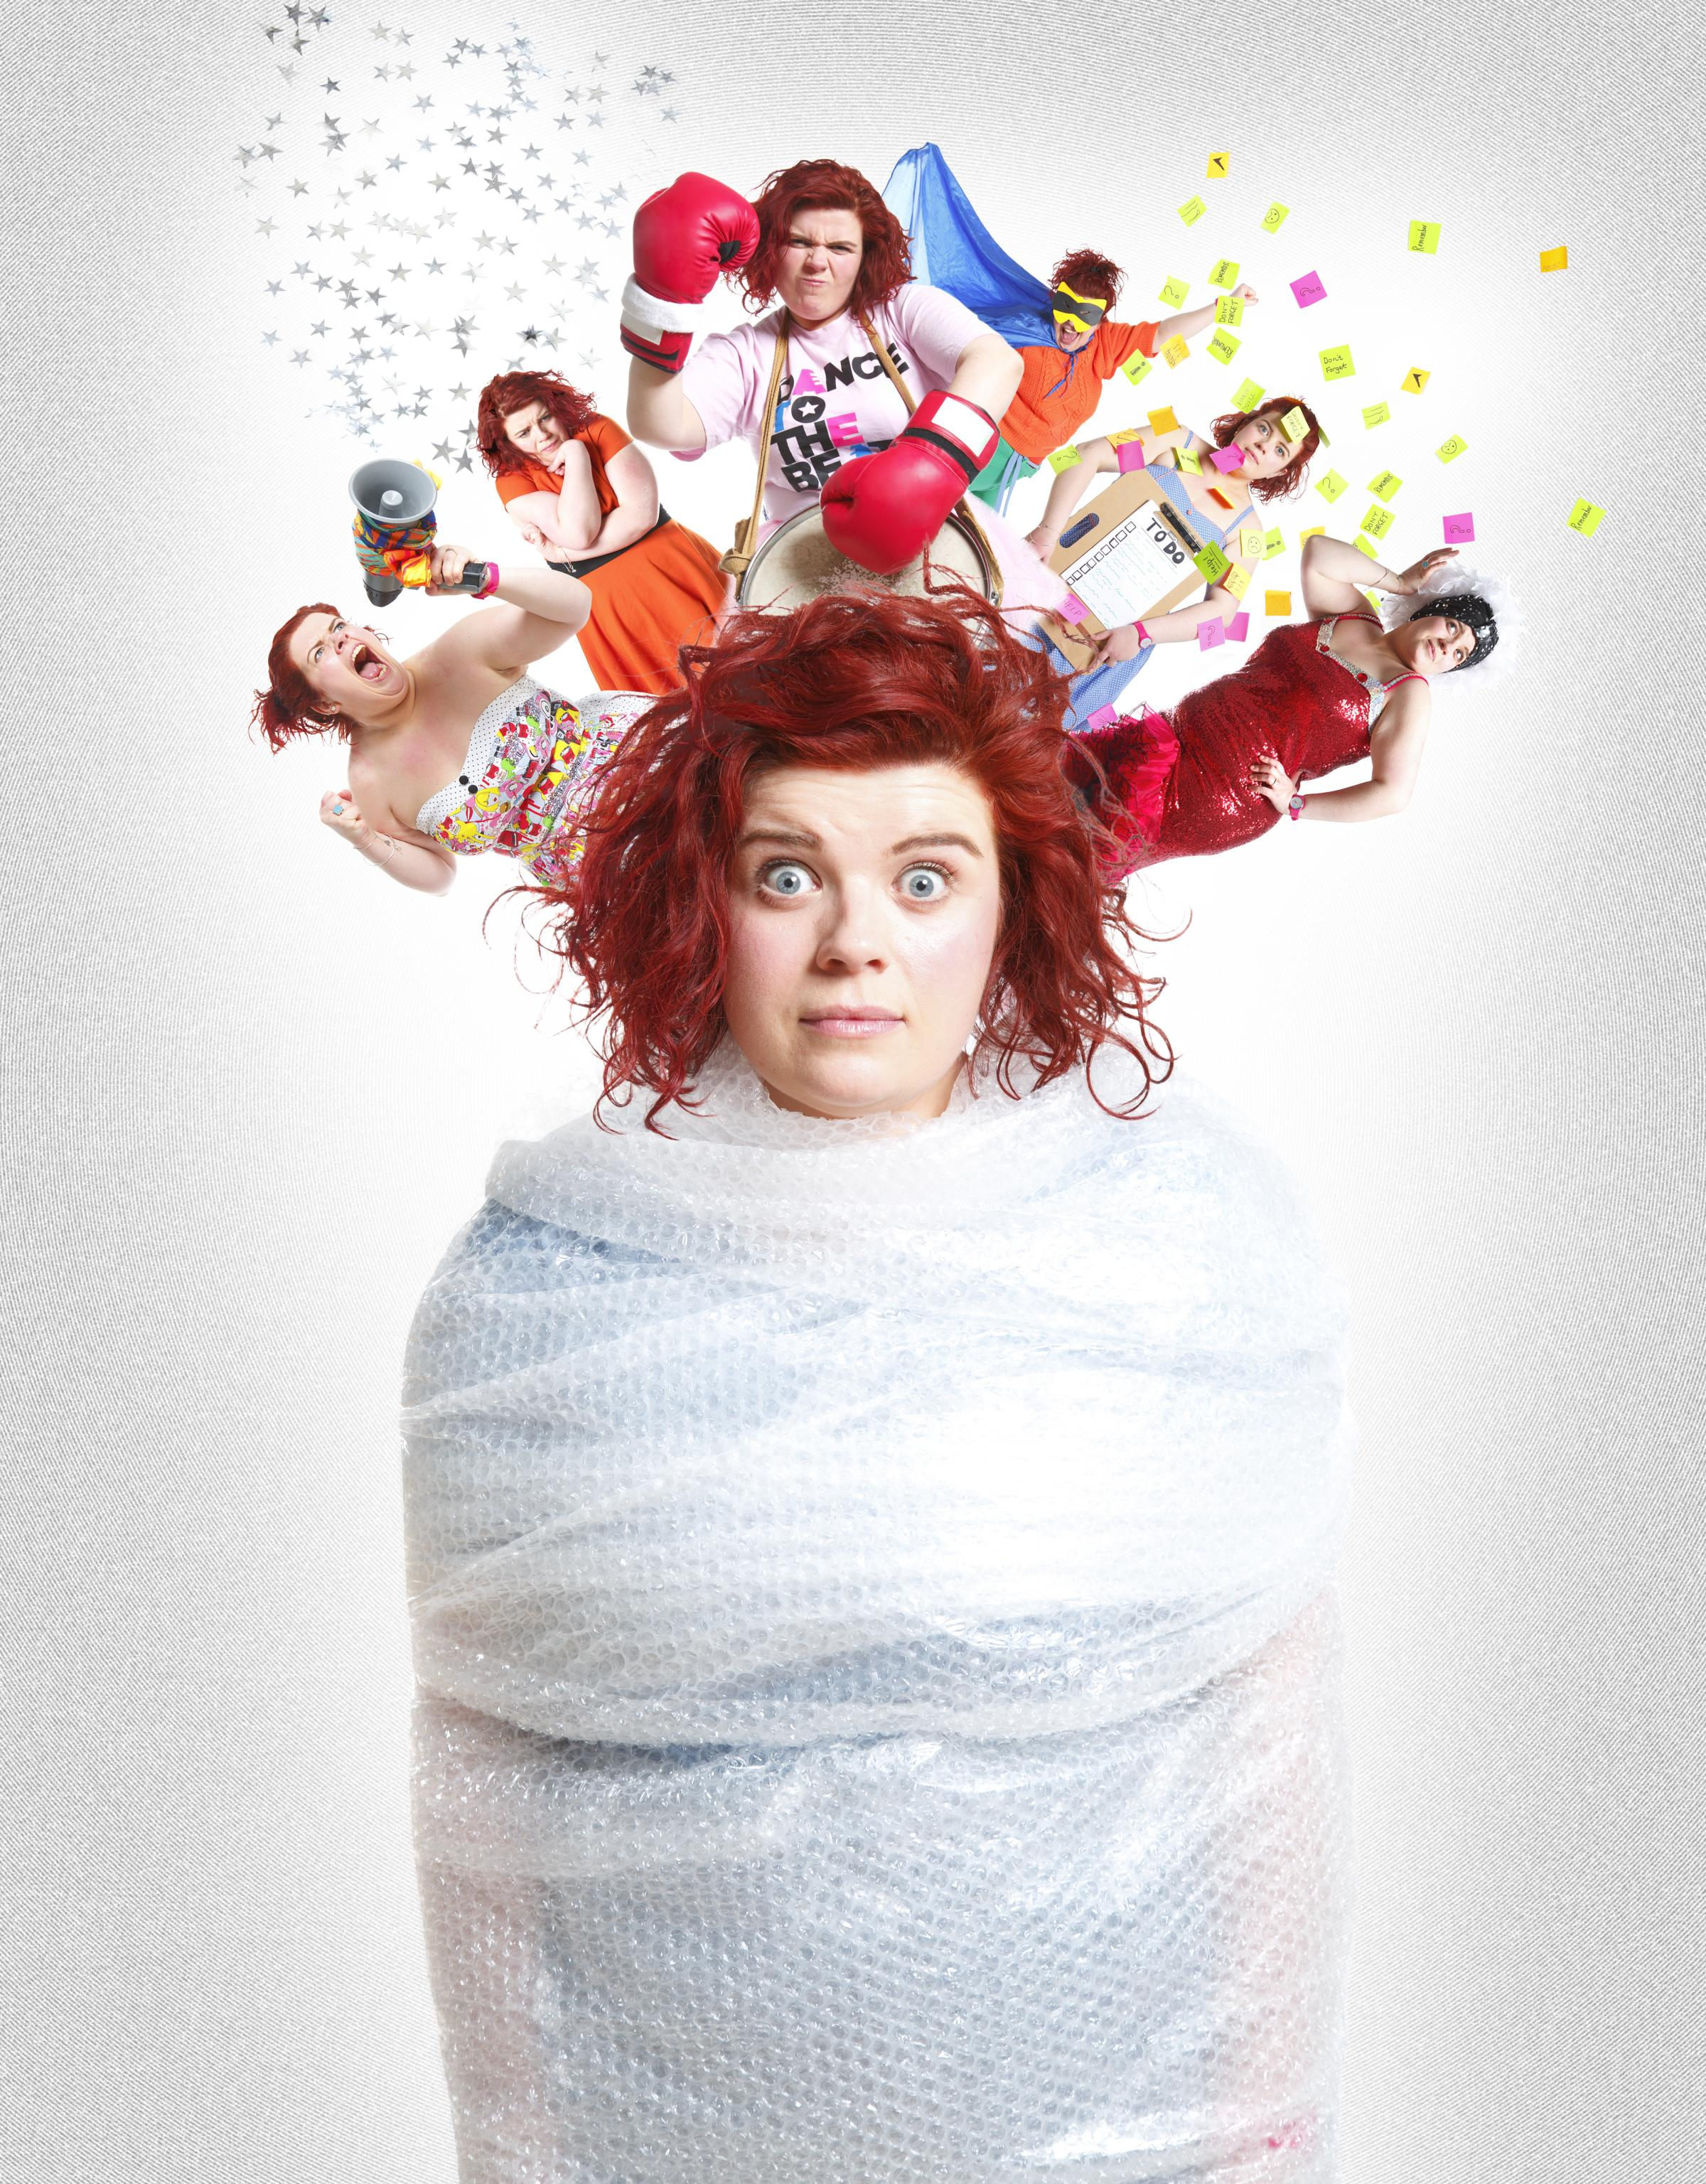 Comedy on ADHD diagnosis asks 'what will a label do?'